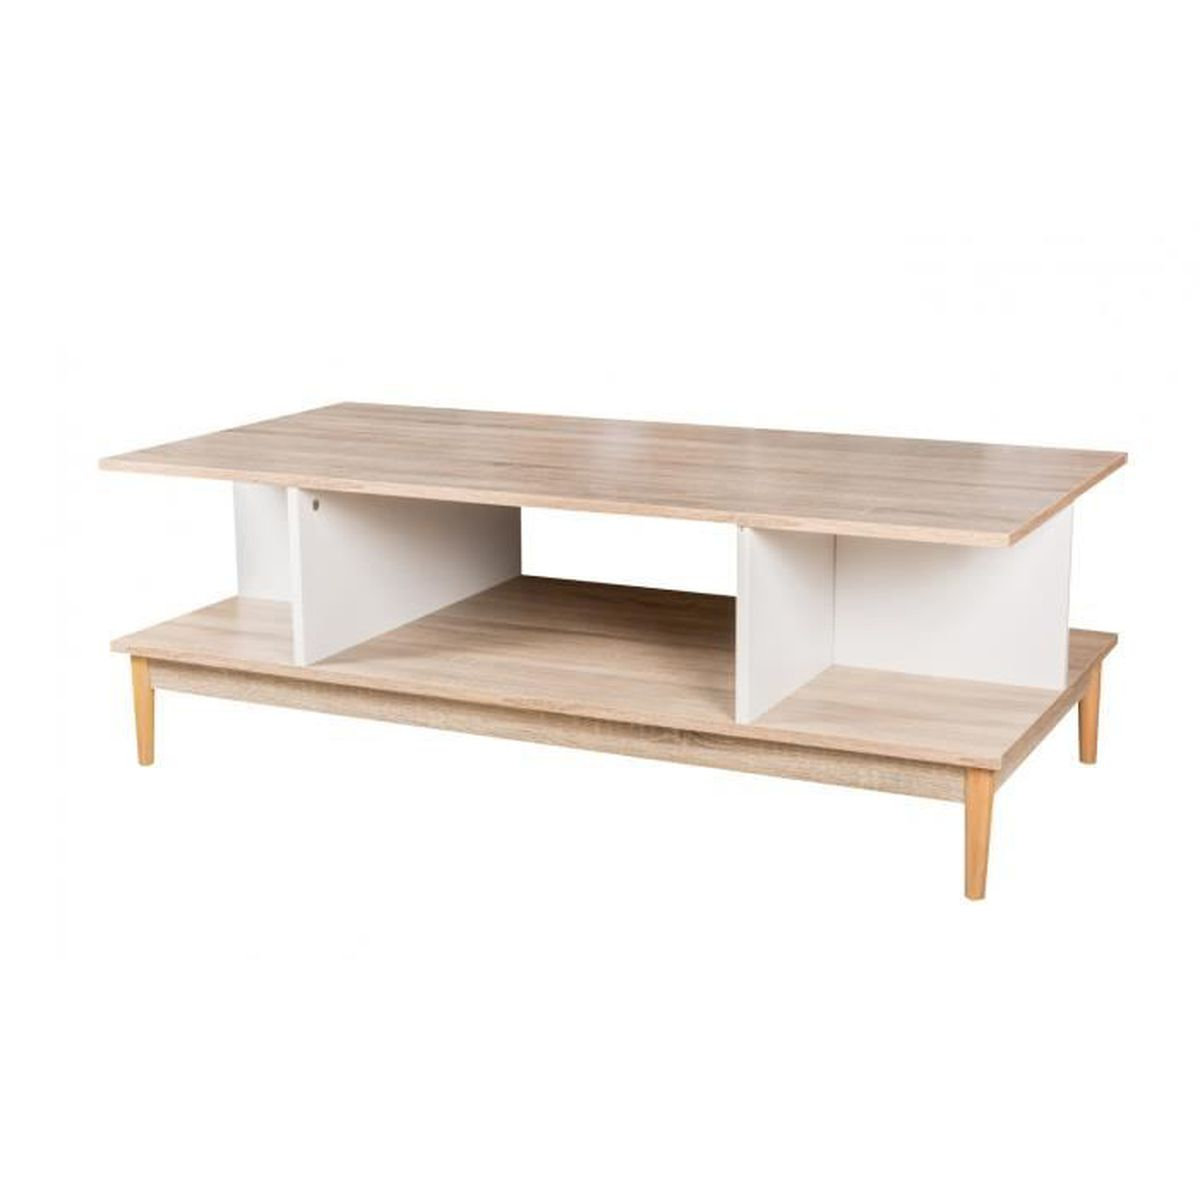 TABLE BASSE Table basse gaby